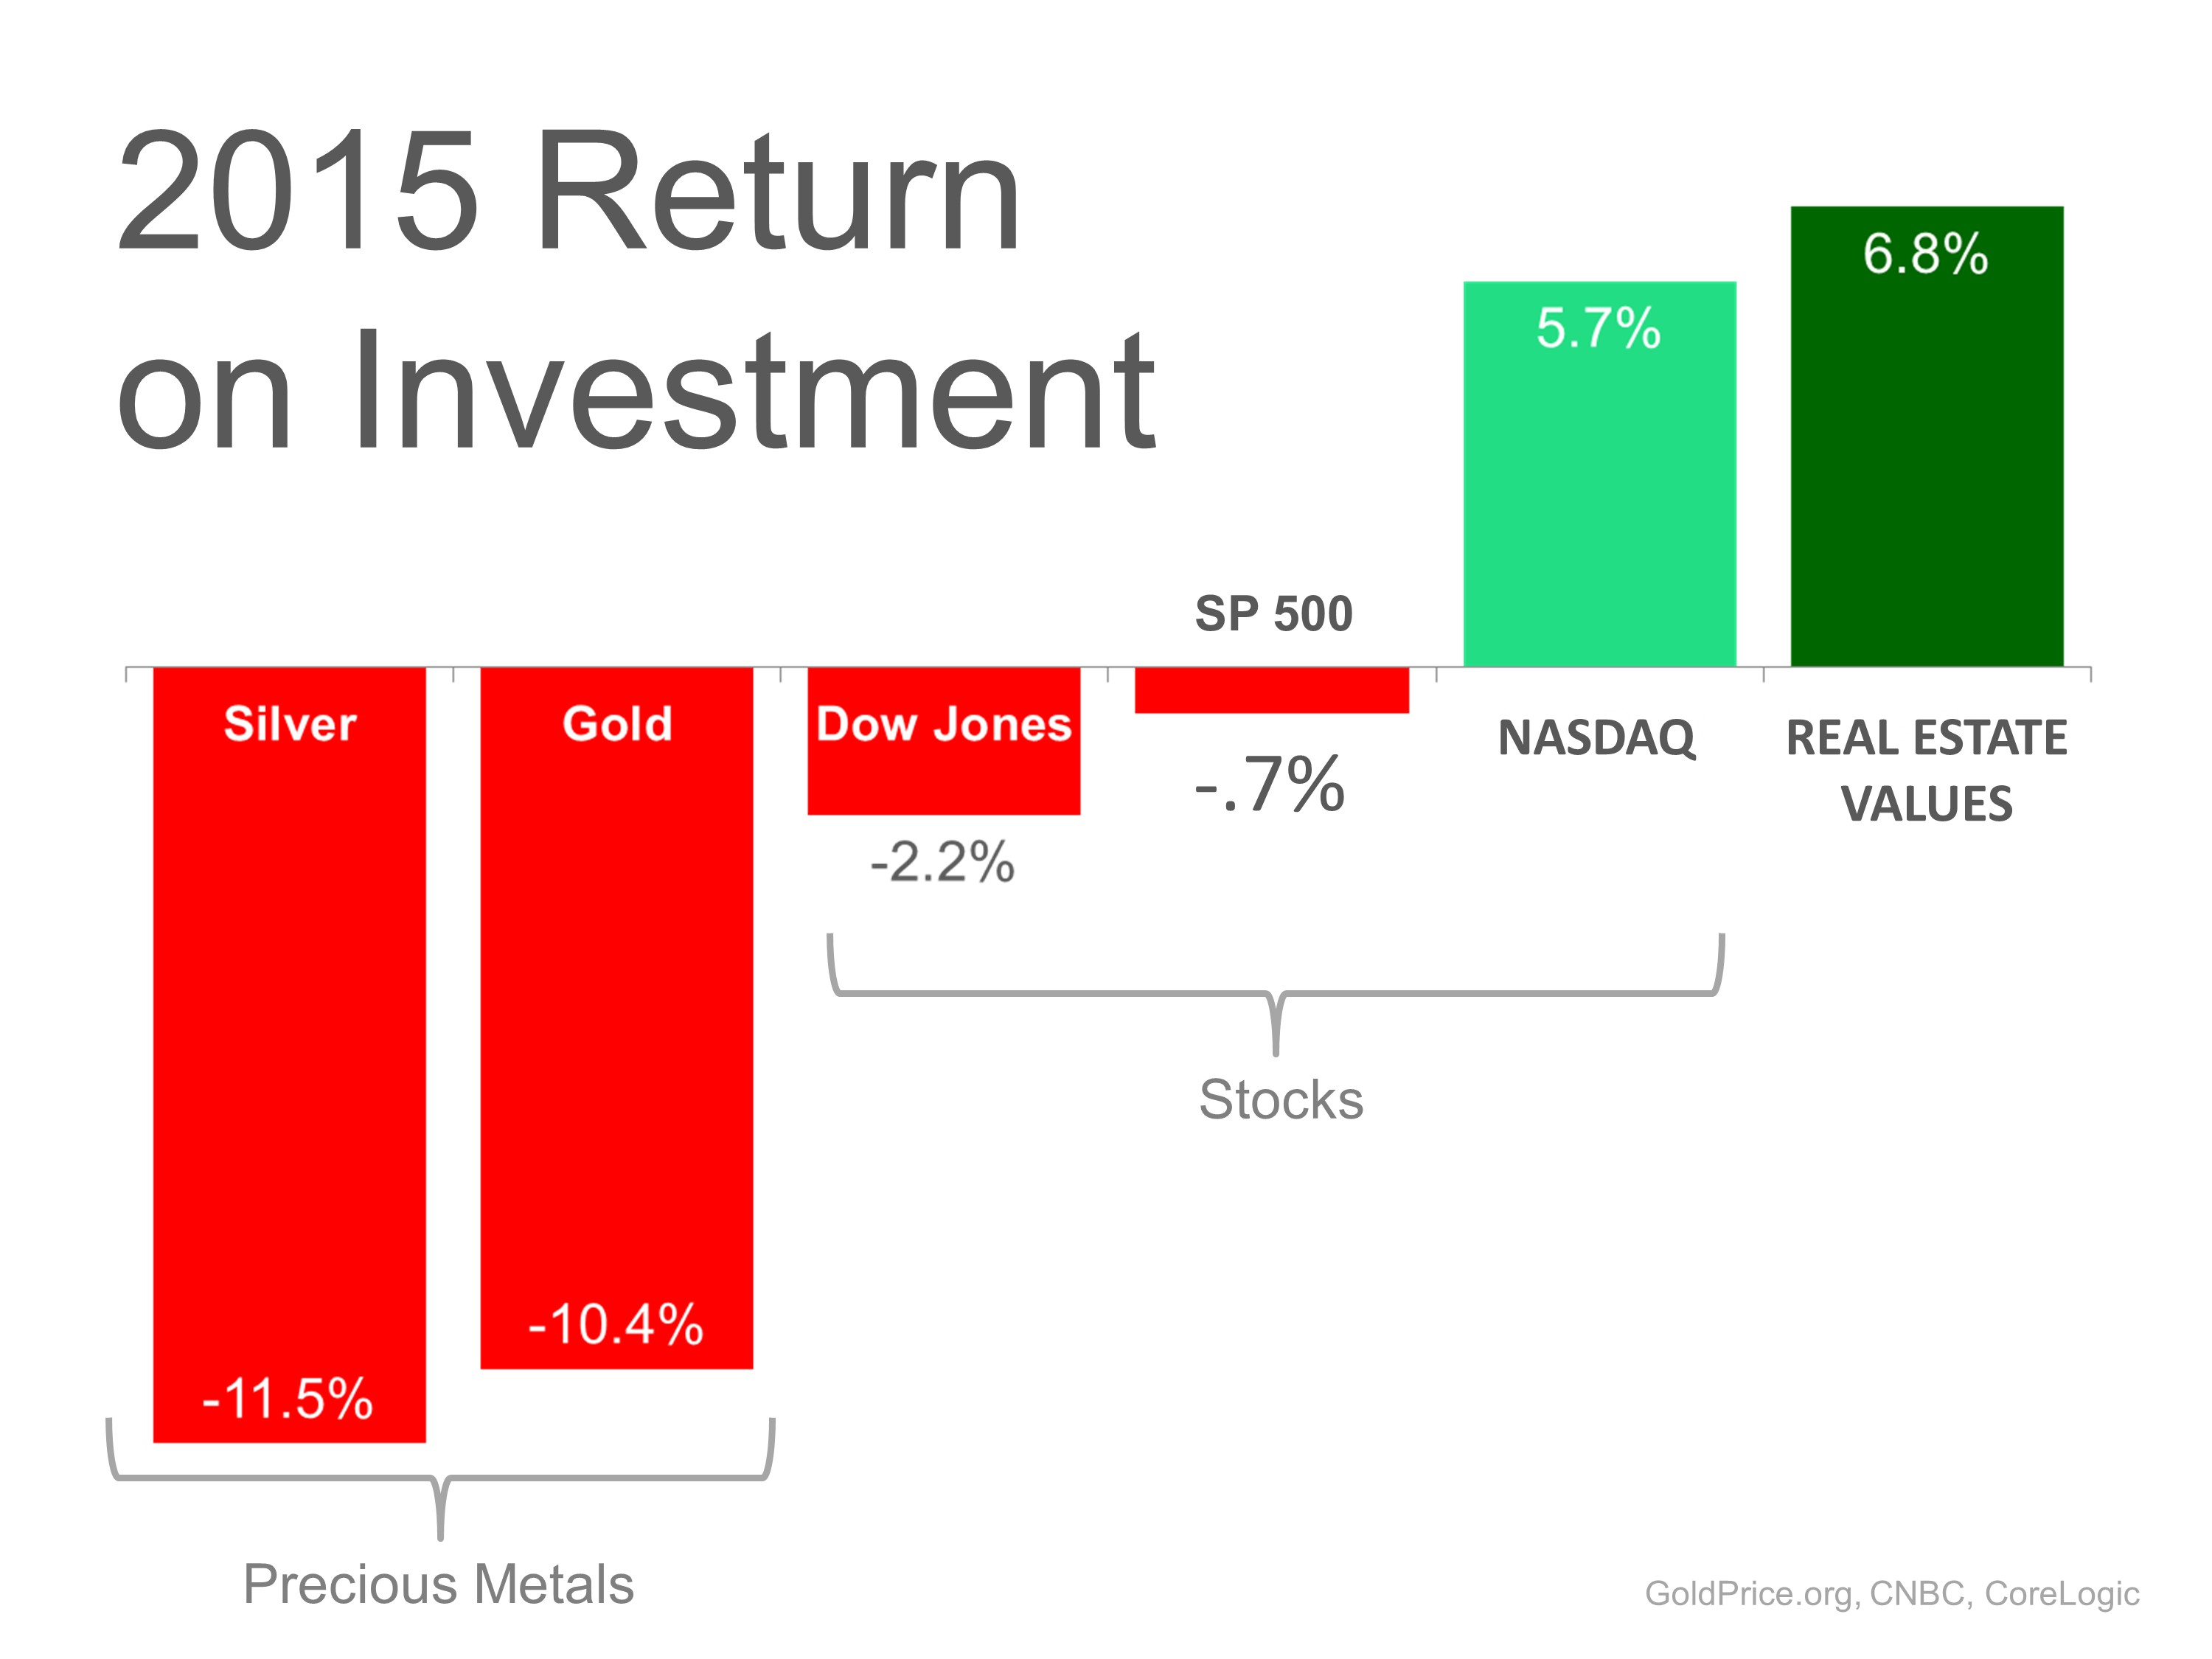 2015 return on investment show real estate the best